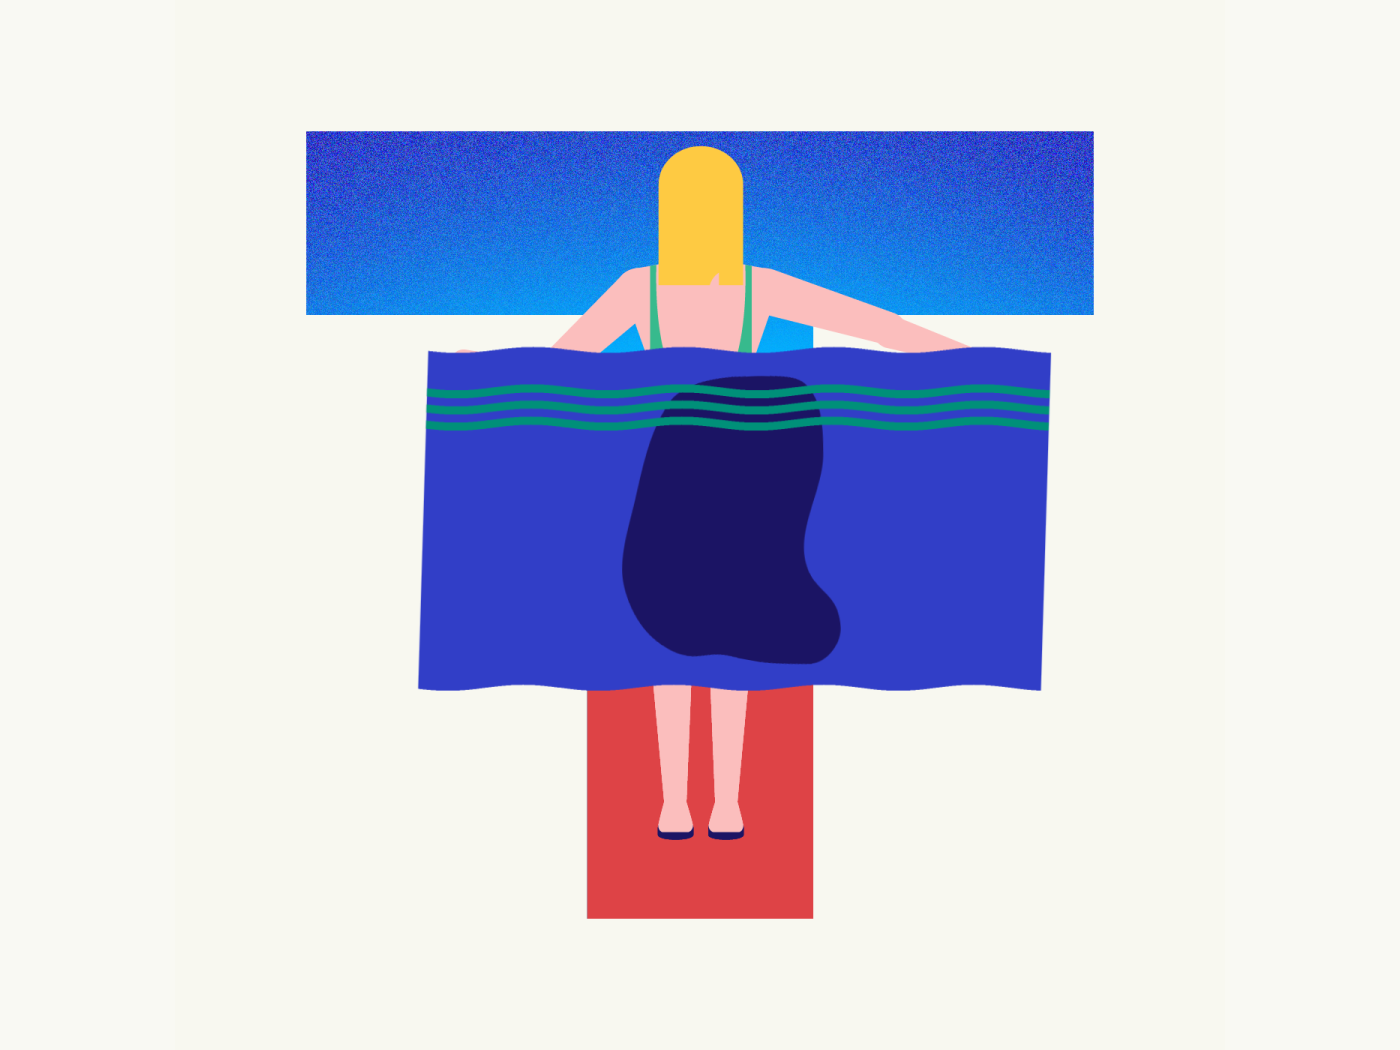 36 days of type   Letter T wet towel summer vibes summer 36days-t 36days-adobe 36daysoftype06 36daysoftype vector typography wacom intuos illustration design graphic illustrator graphic design